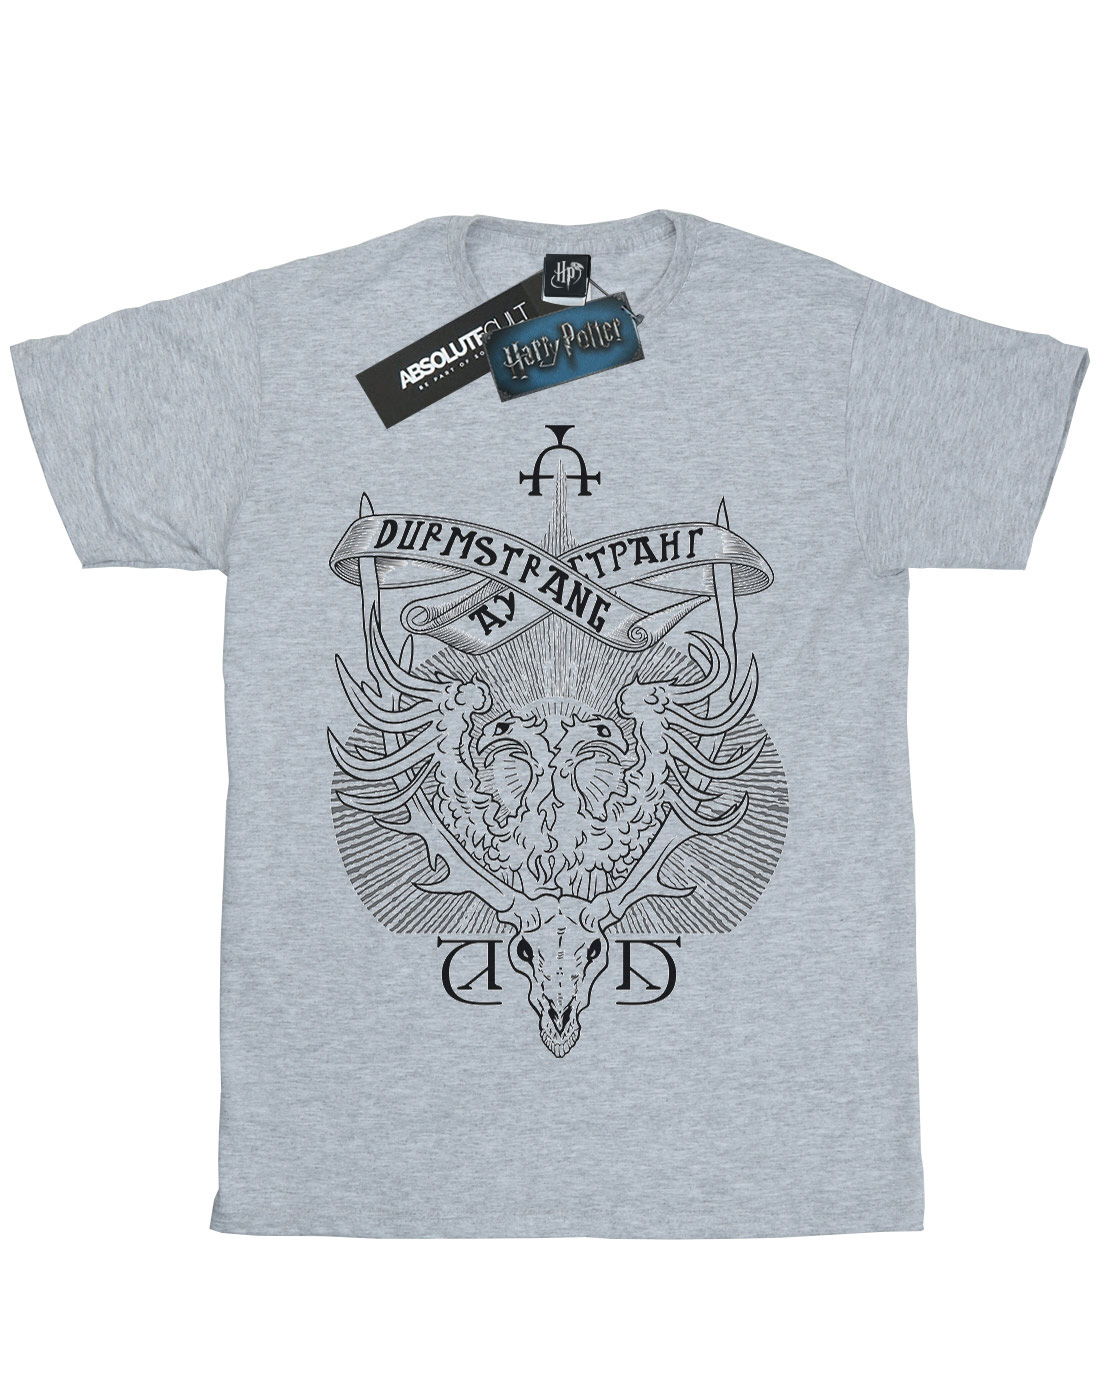 Harry Potter Girls Durmstrang Institute Crest T Shirt Ebay Muggle chat anything not related to `d`urmstrang is to be posted here. ebay